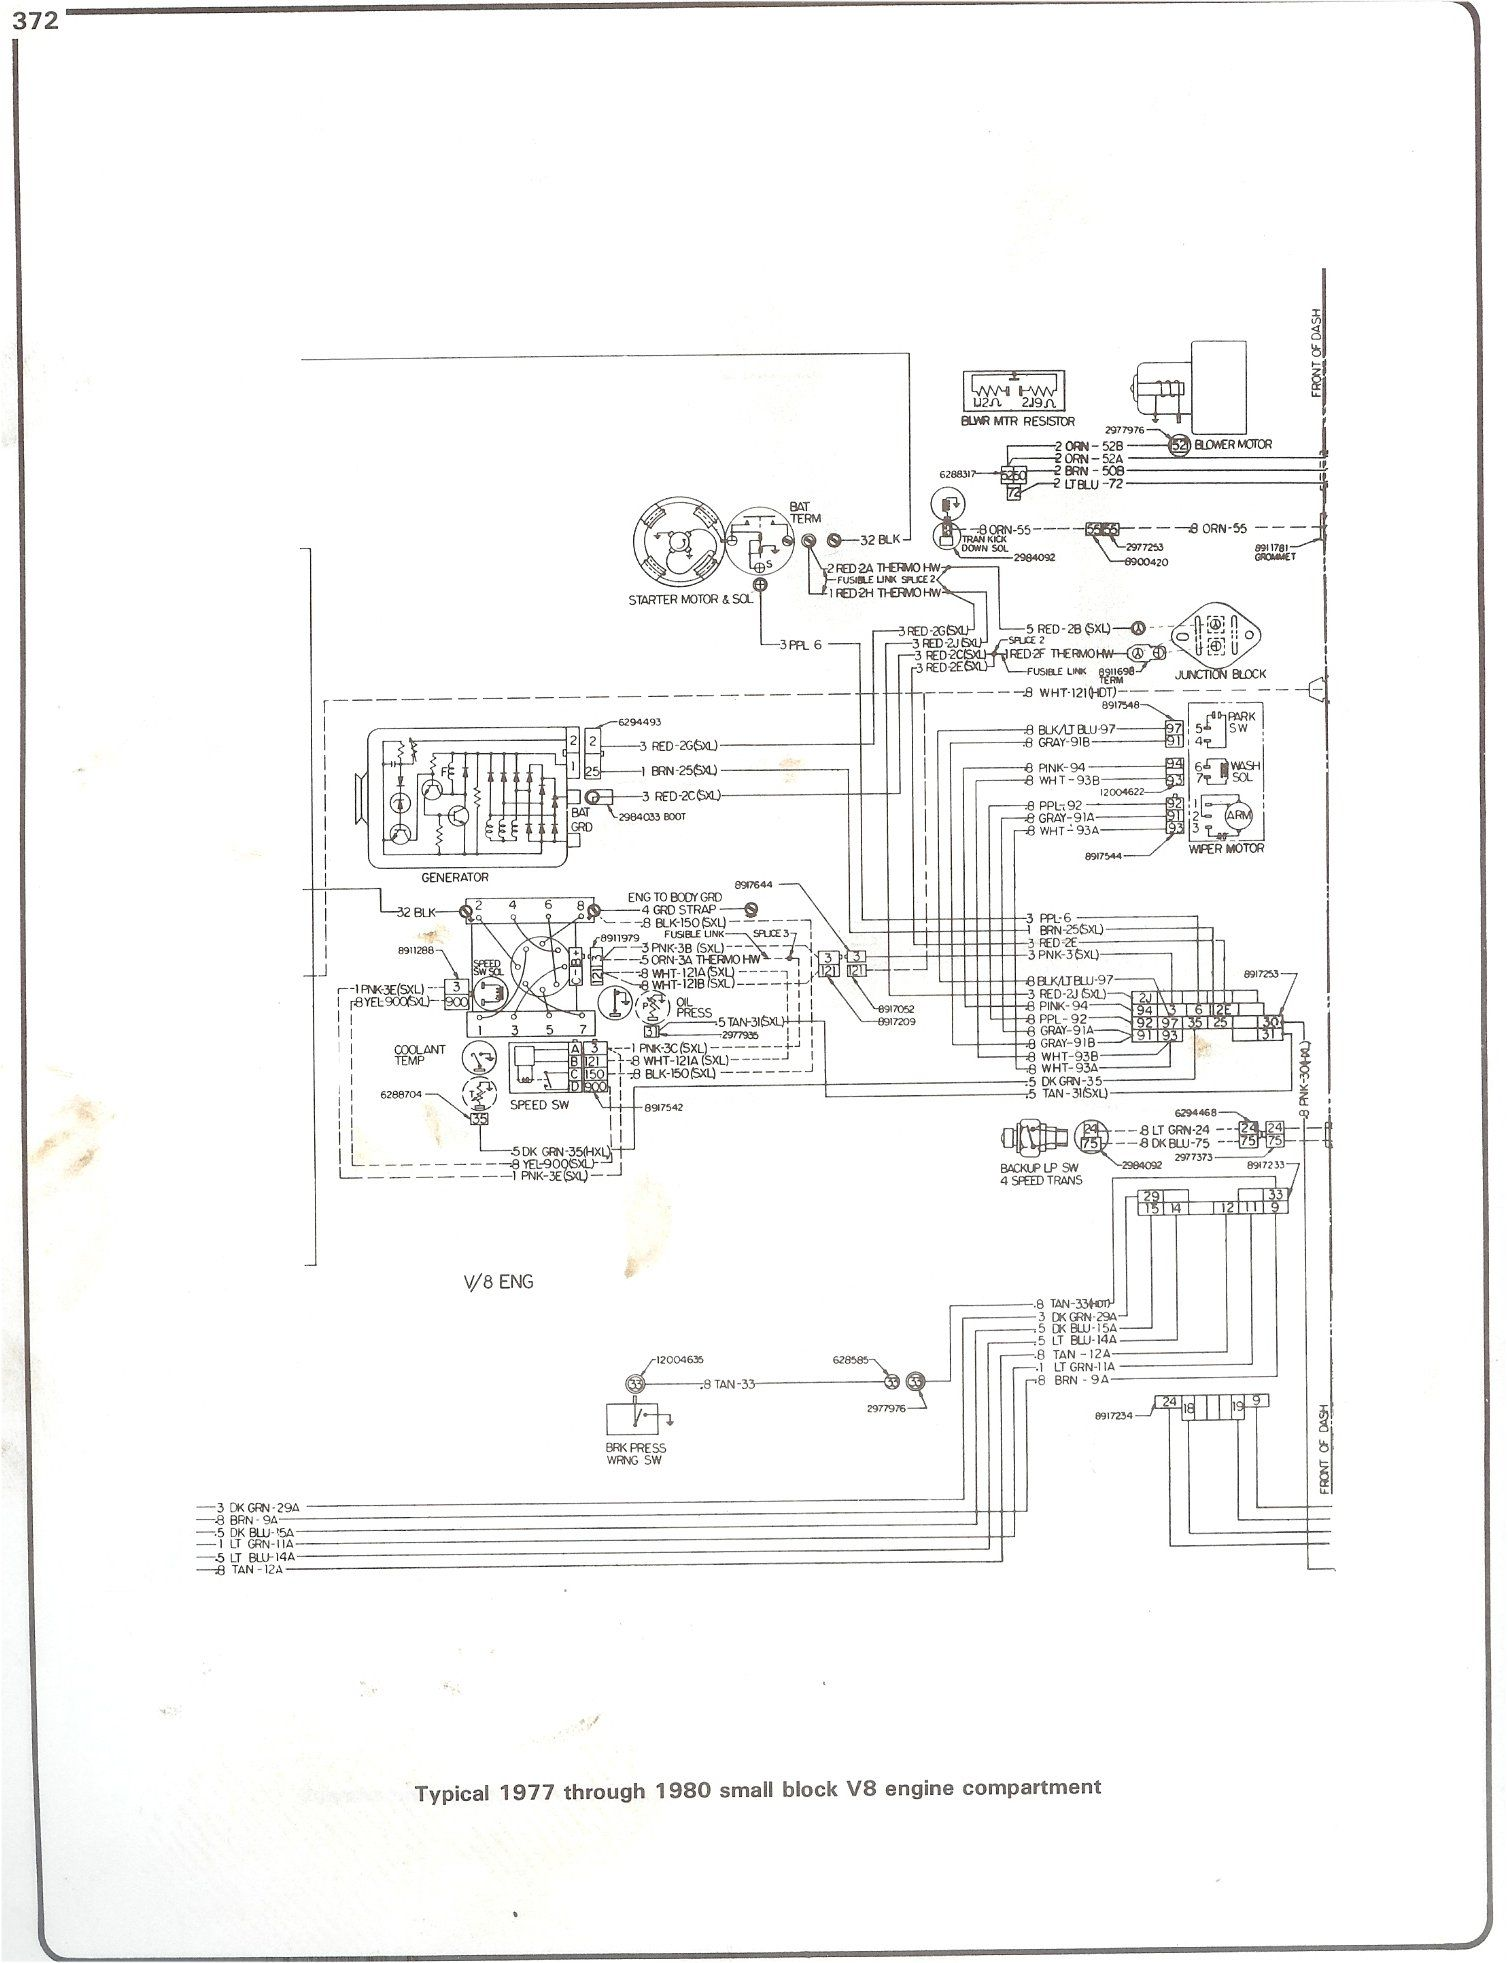 1993 chevy caprice wiring diagram 73 caprice wiring diagram